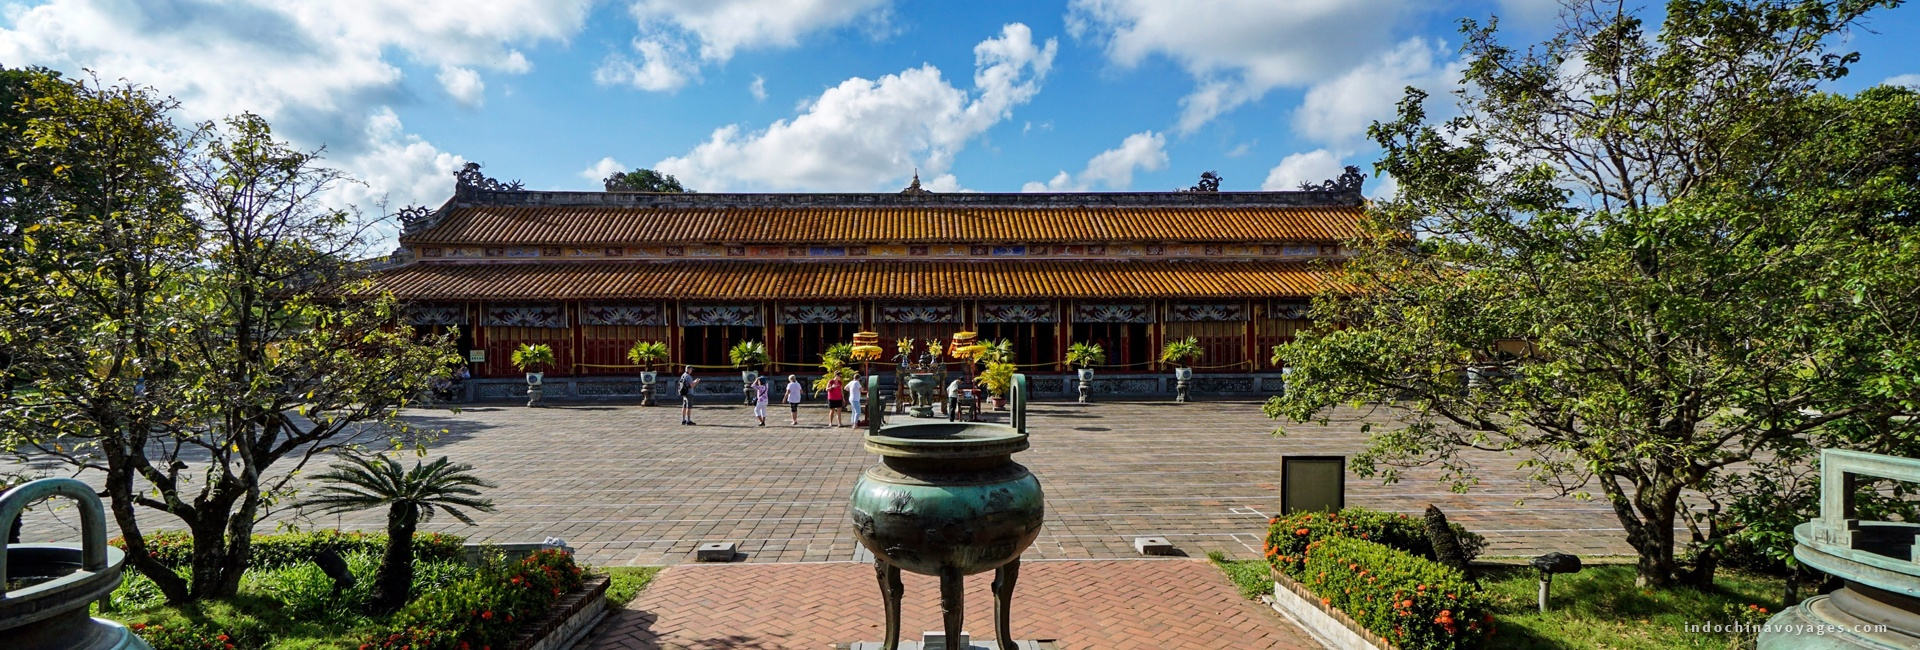 Hue is brimming with royal palaces, temples, and mausoleums